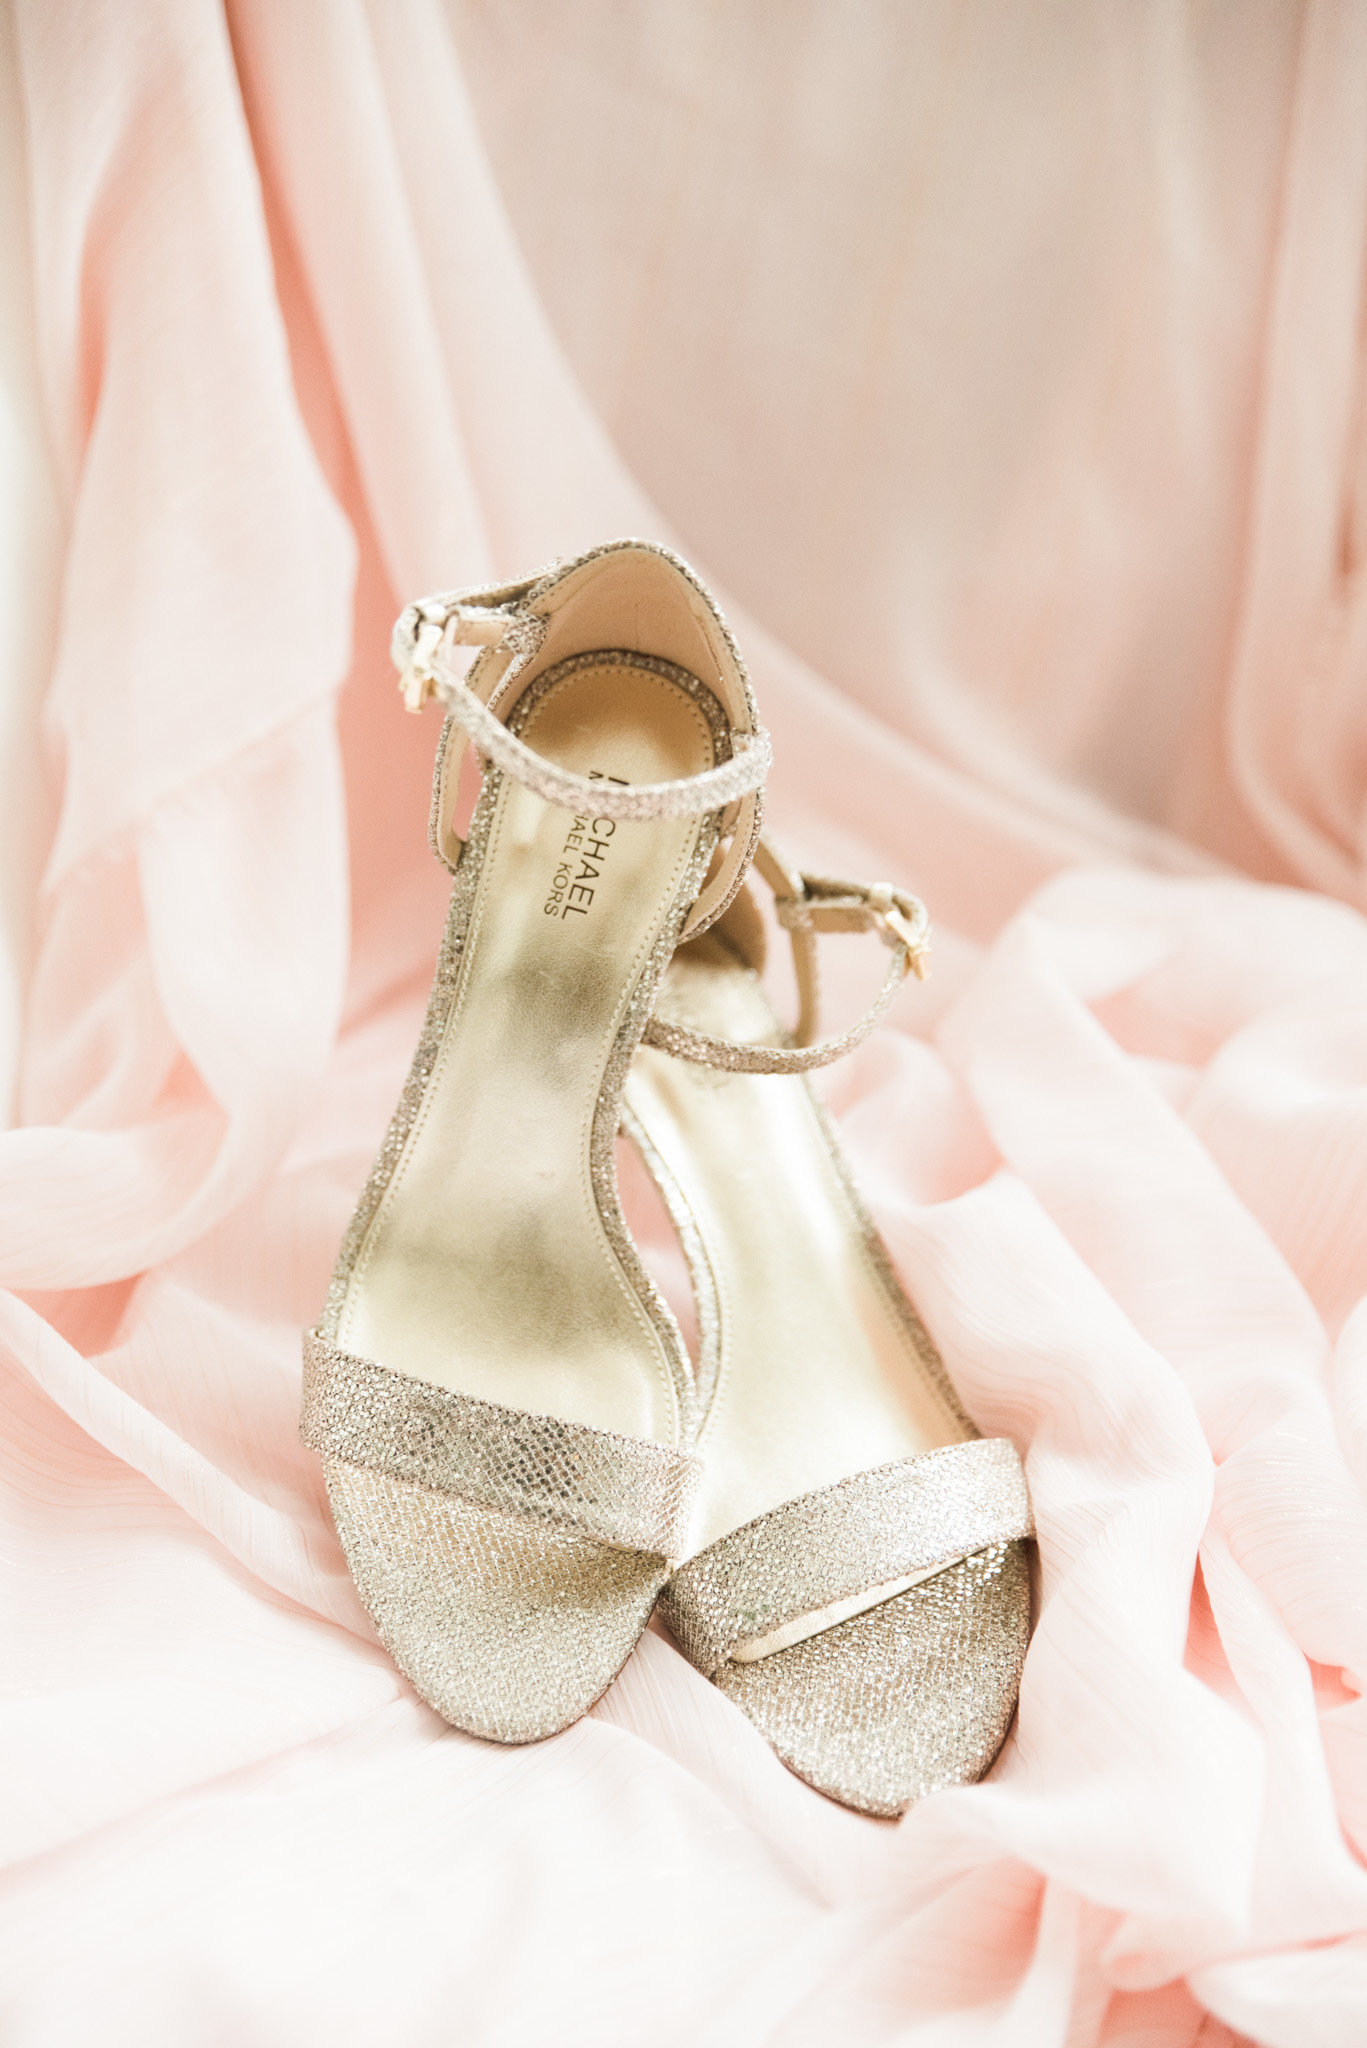 Champagne Gold Strappy Michael Kors Bridal Shoes with Blush Pink Chiffon Dress